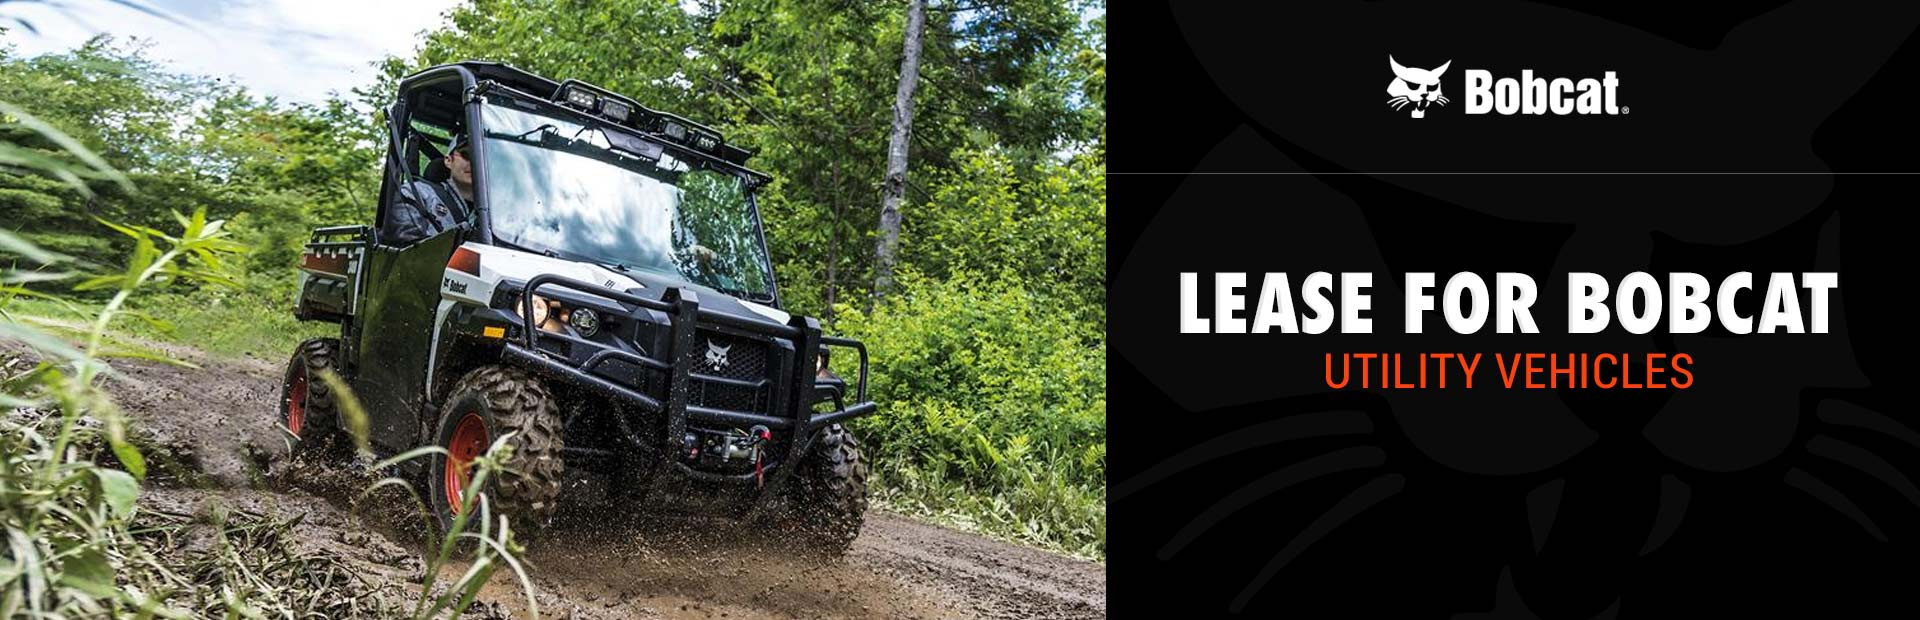 Bobcat: Lease for Bobcat Utility Vehicles